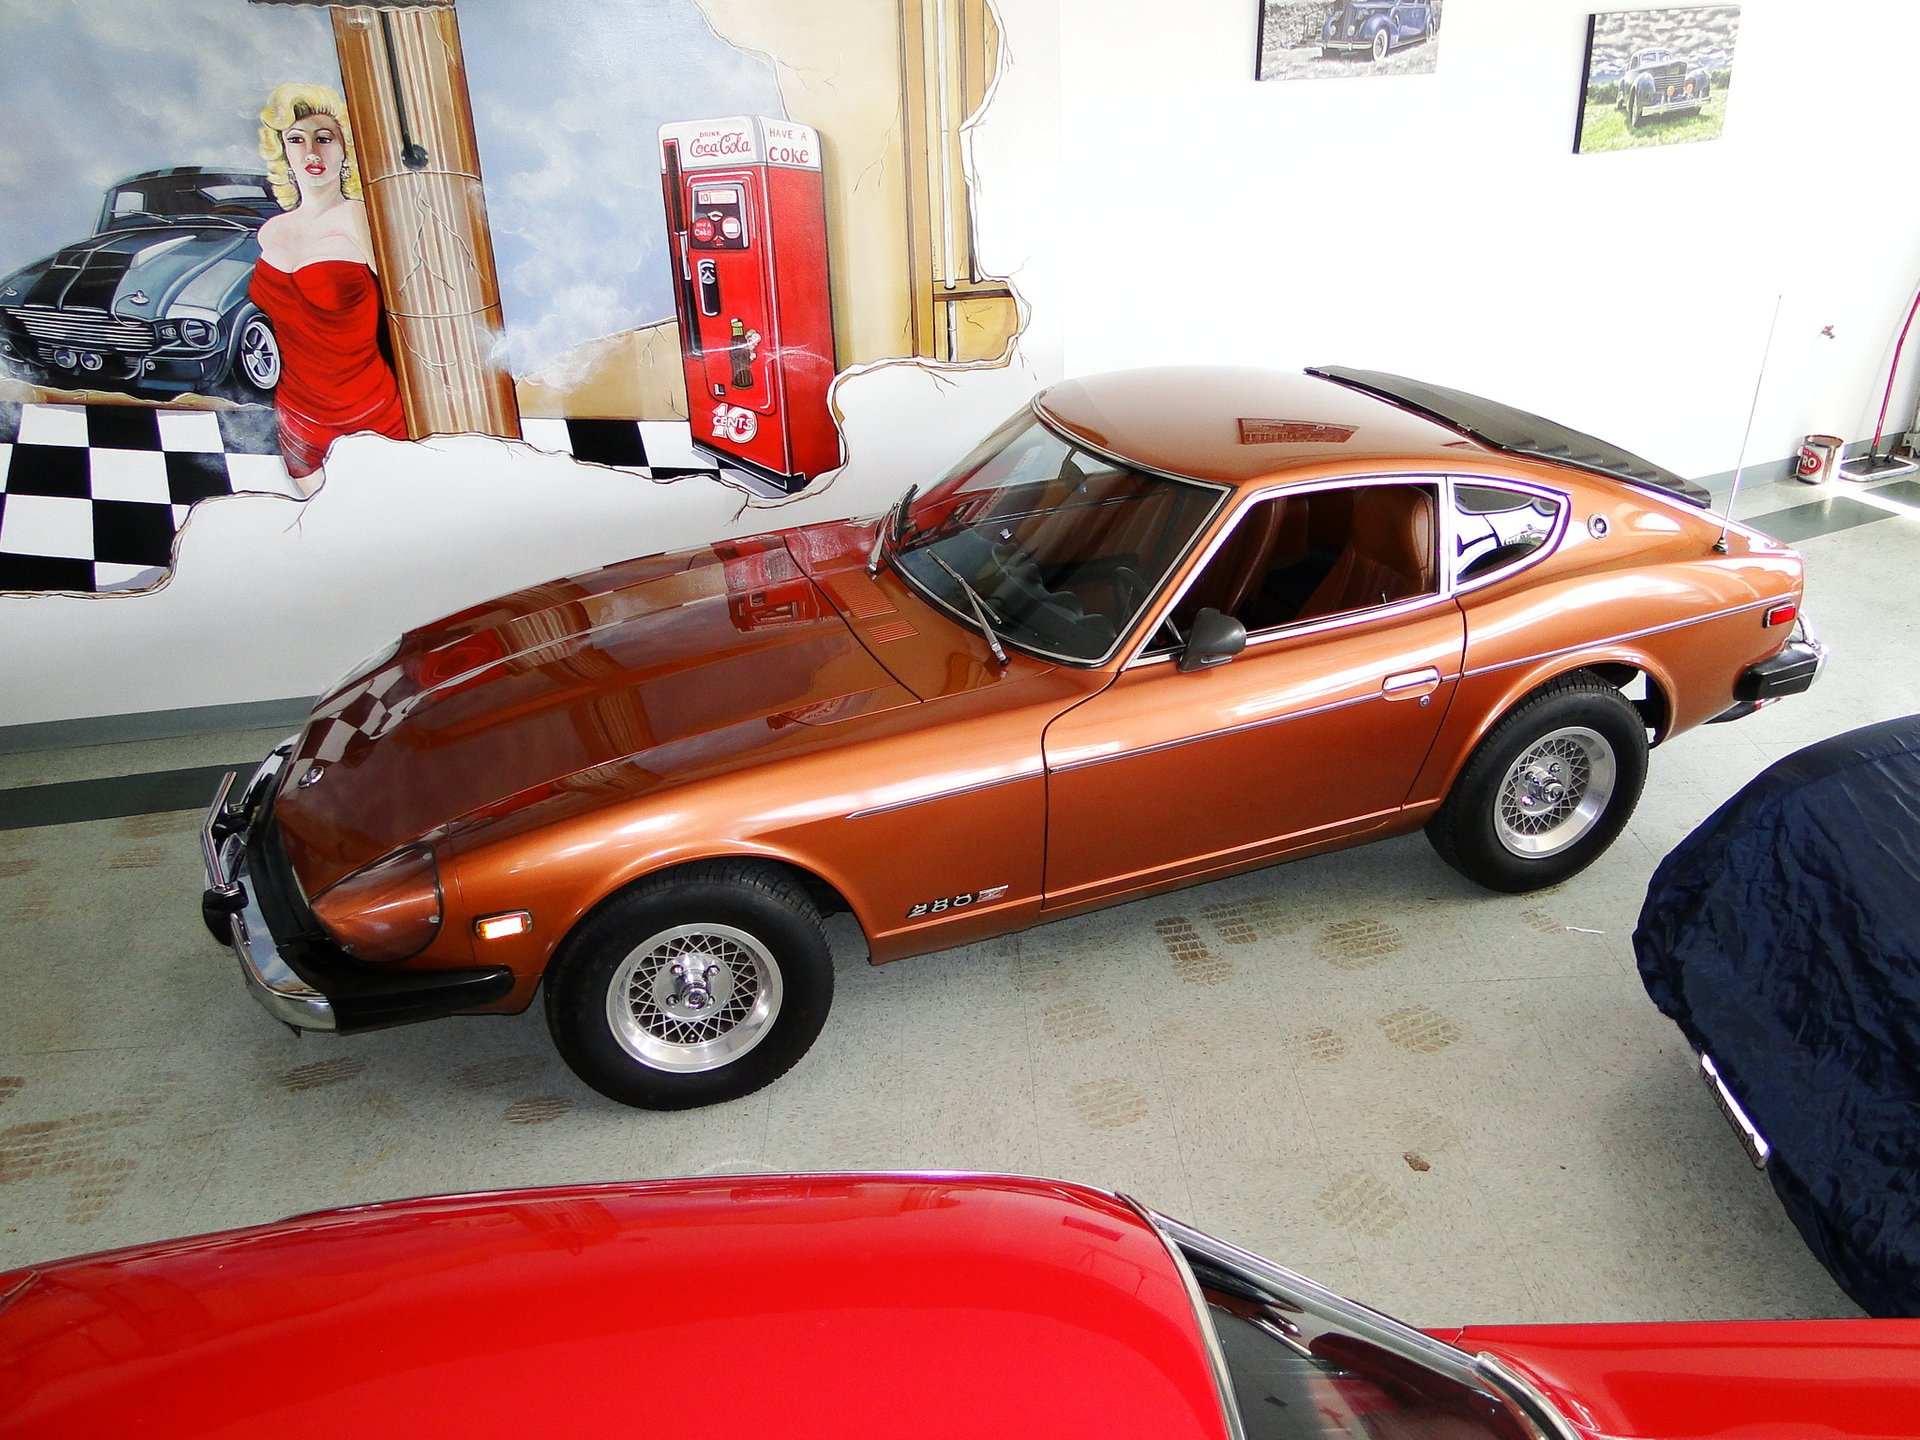 1976 Datsun 280Z | Legendary Motors - Classic Cars, Muscle Cars, Hot